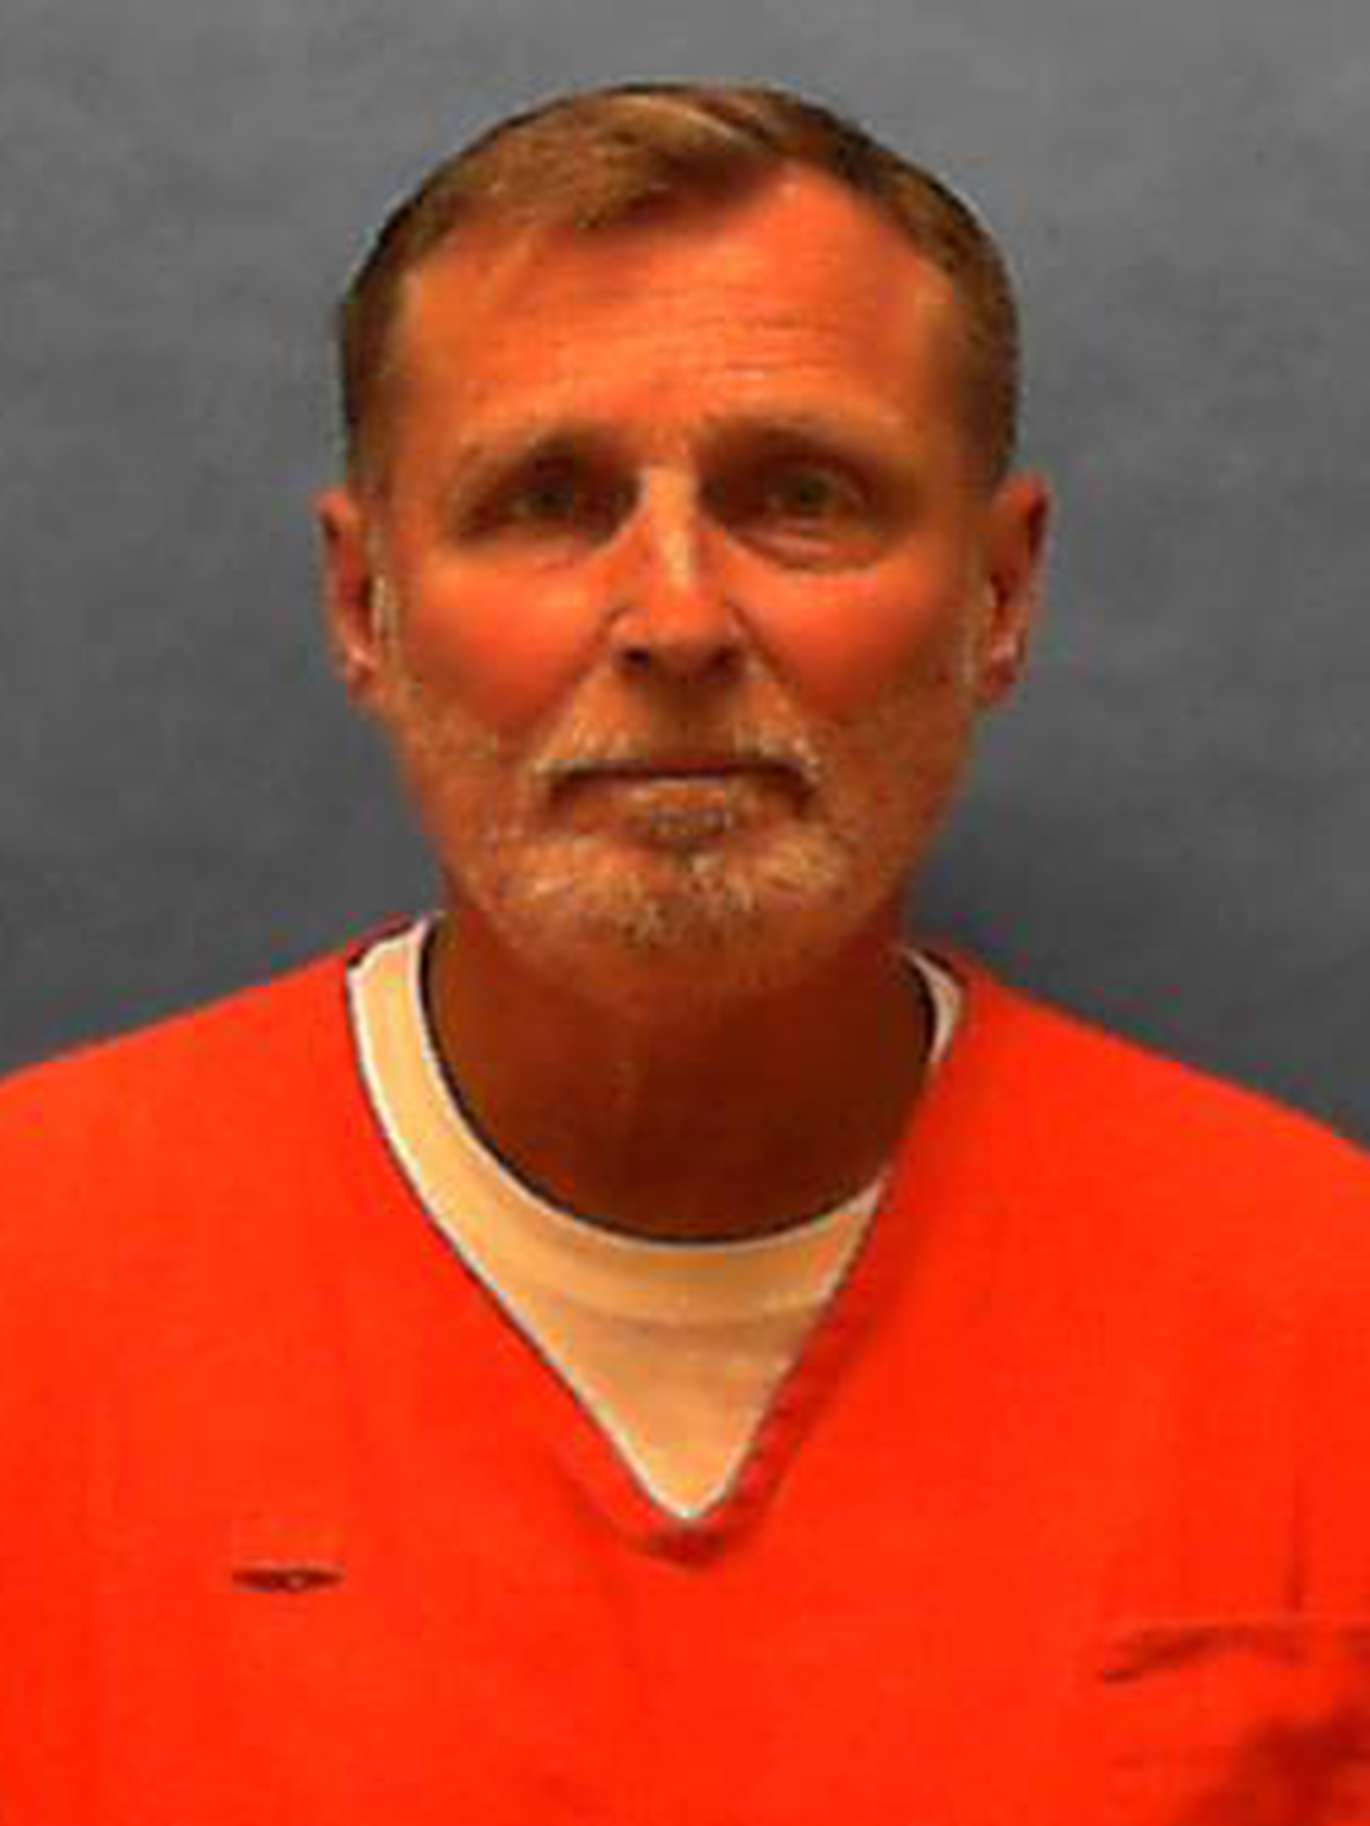 Glen Rogers was sentenced to die in July 1997 for the murder of Tina Marie Cribbs on Nov. 5, 1995. Rogers robbed his victim and was arrested driving her car in Kentucky a week later. He started his sentence on July 11, 1997.